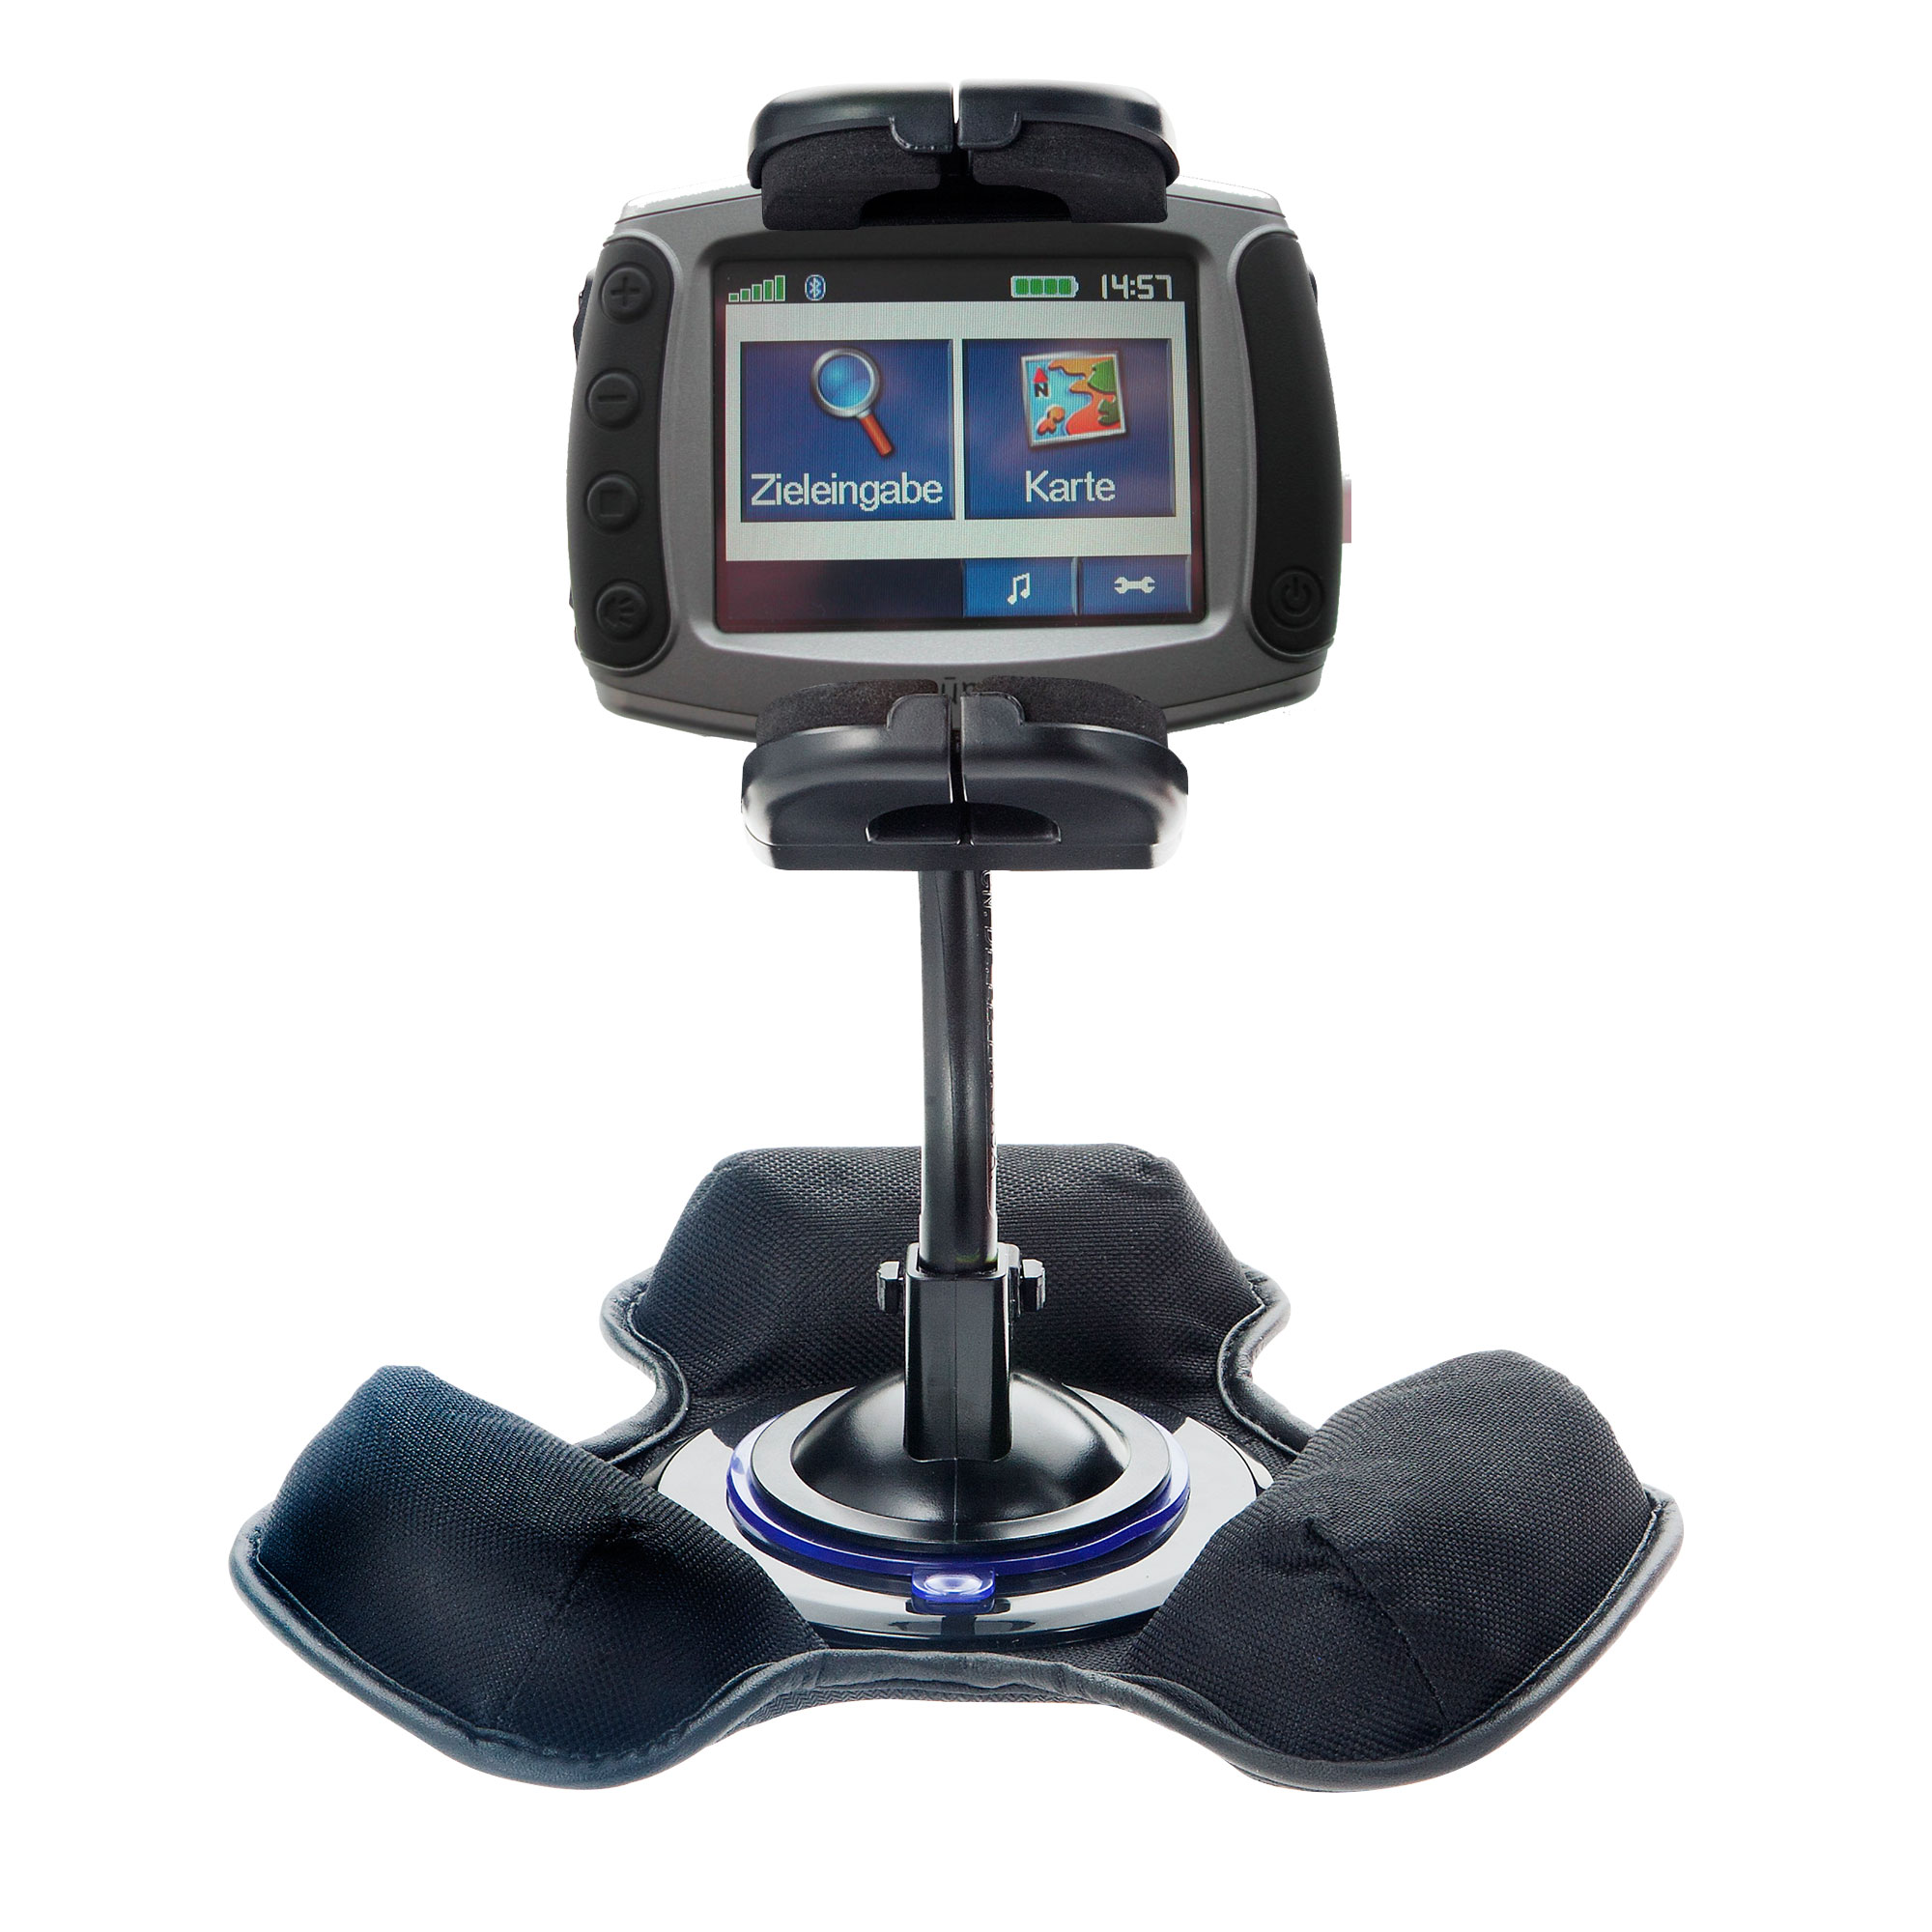 Dash and Windshield Holder compatible with the Garmin Zumo 550